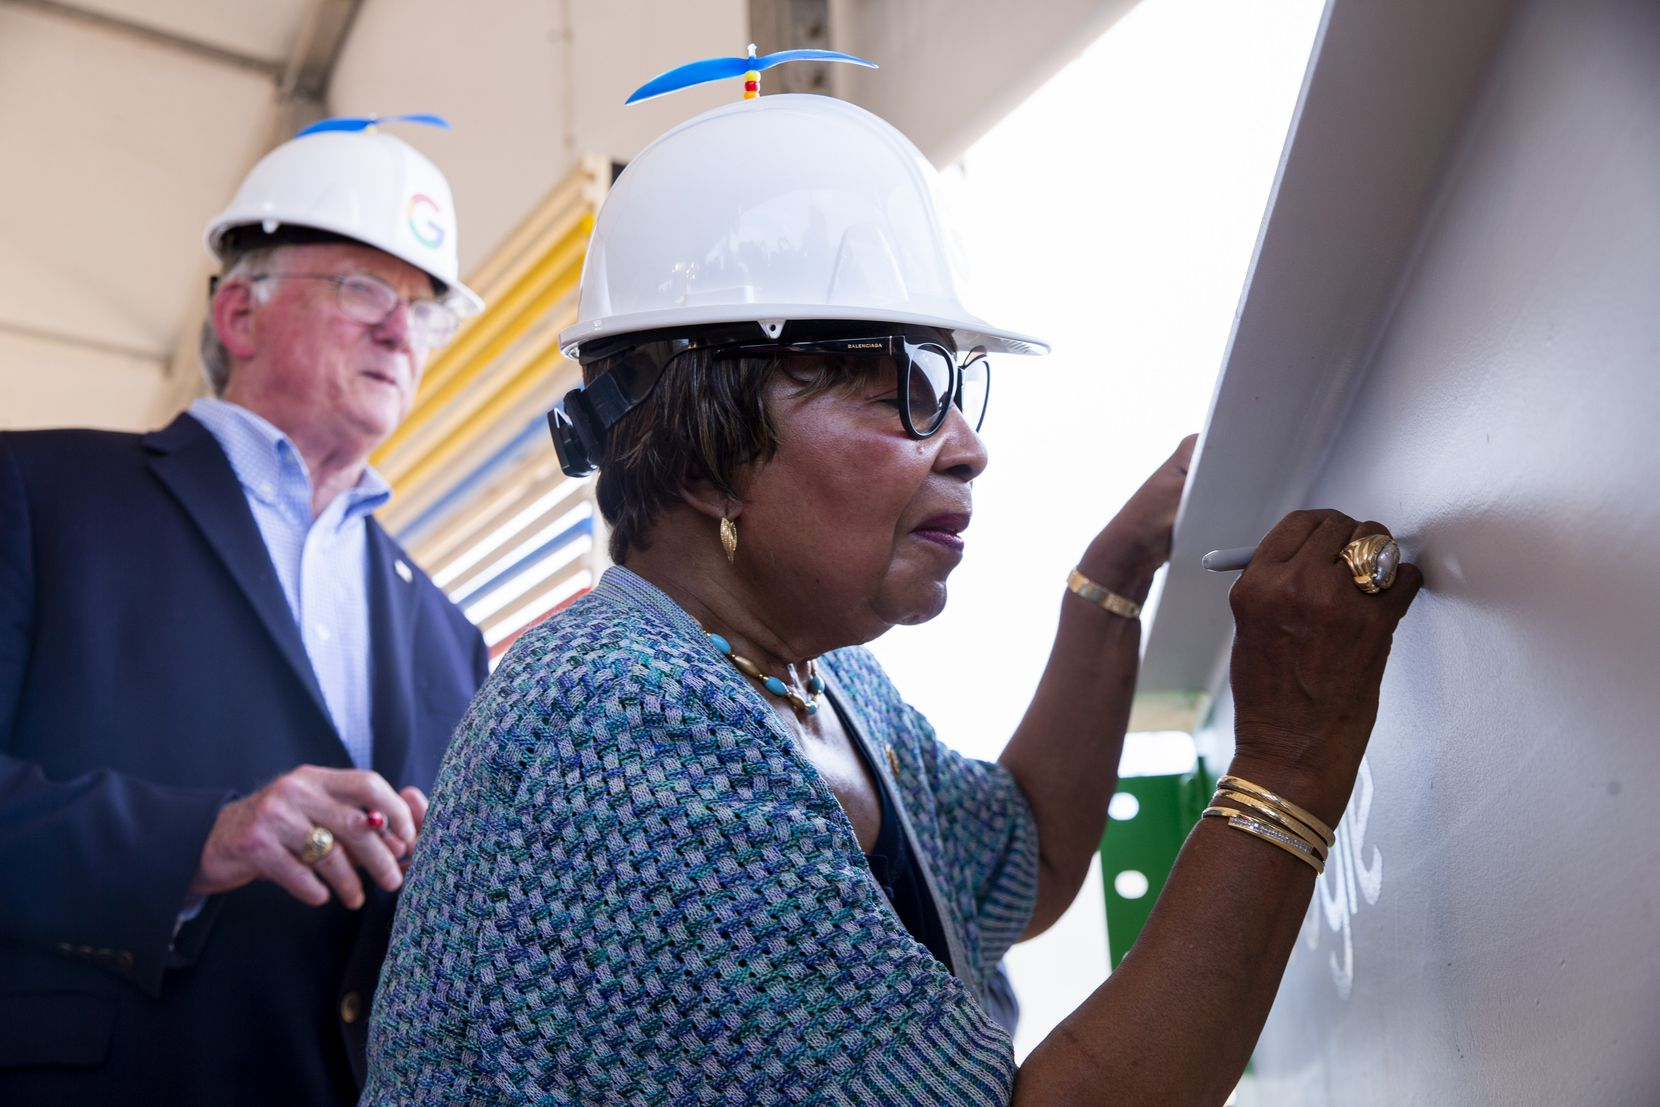 Midlothian mayor Richard Reno and U.S. Representative Eddie Bernice Johnson sign a steel bar during an announcement of Google's new data center in Midlothian on Friday.